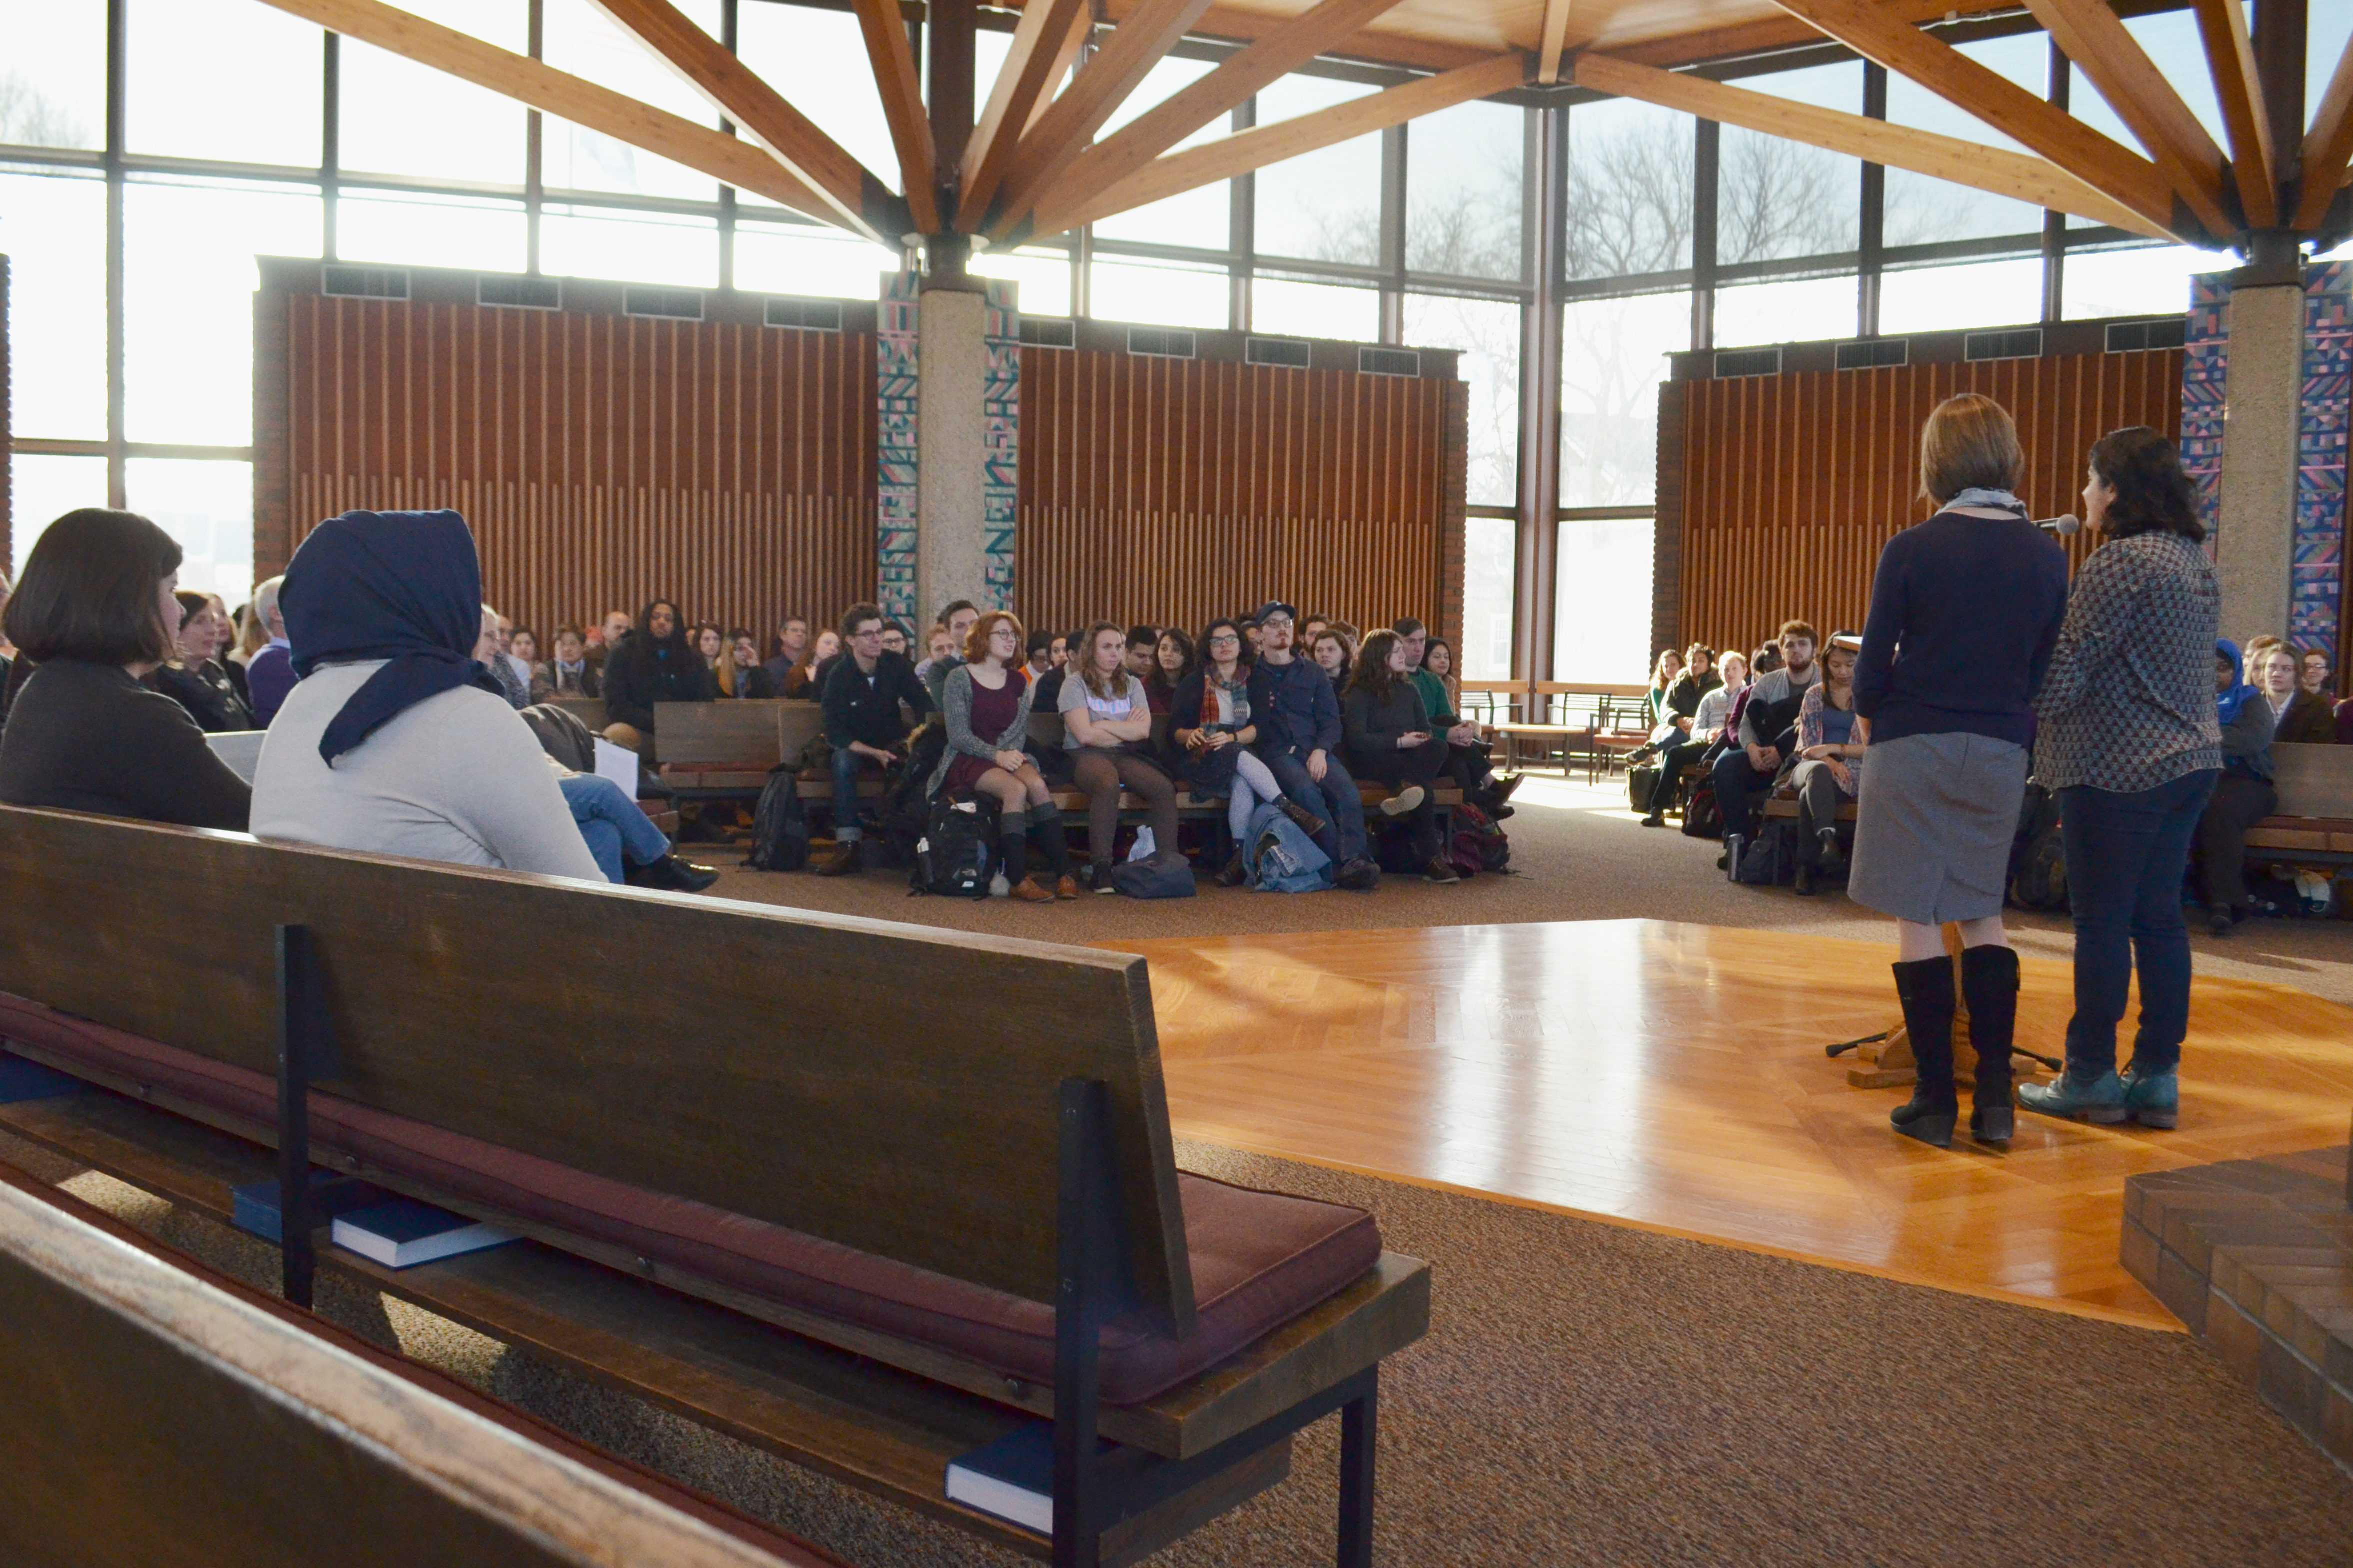 Campus Conversations allow students to discuss political climate